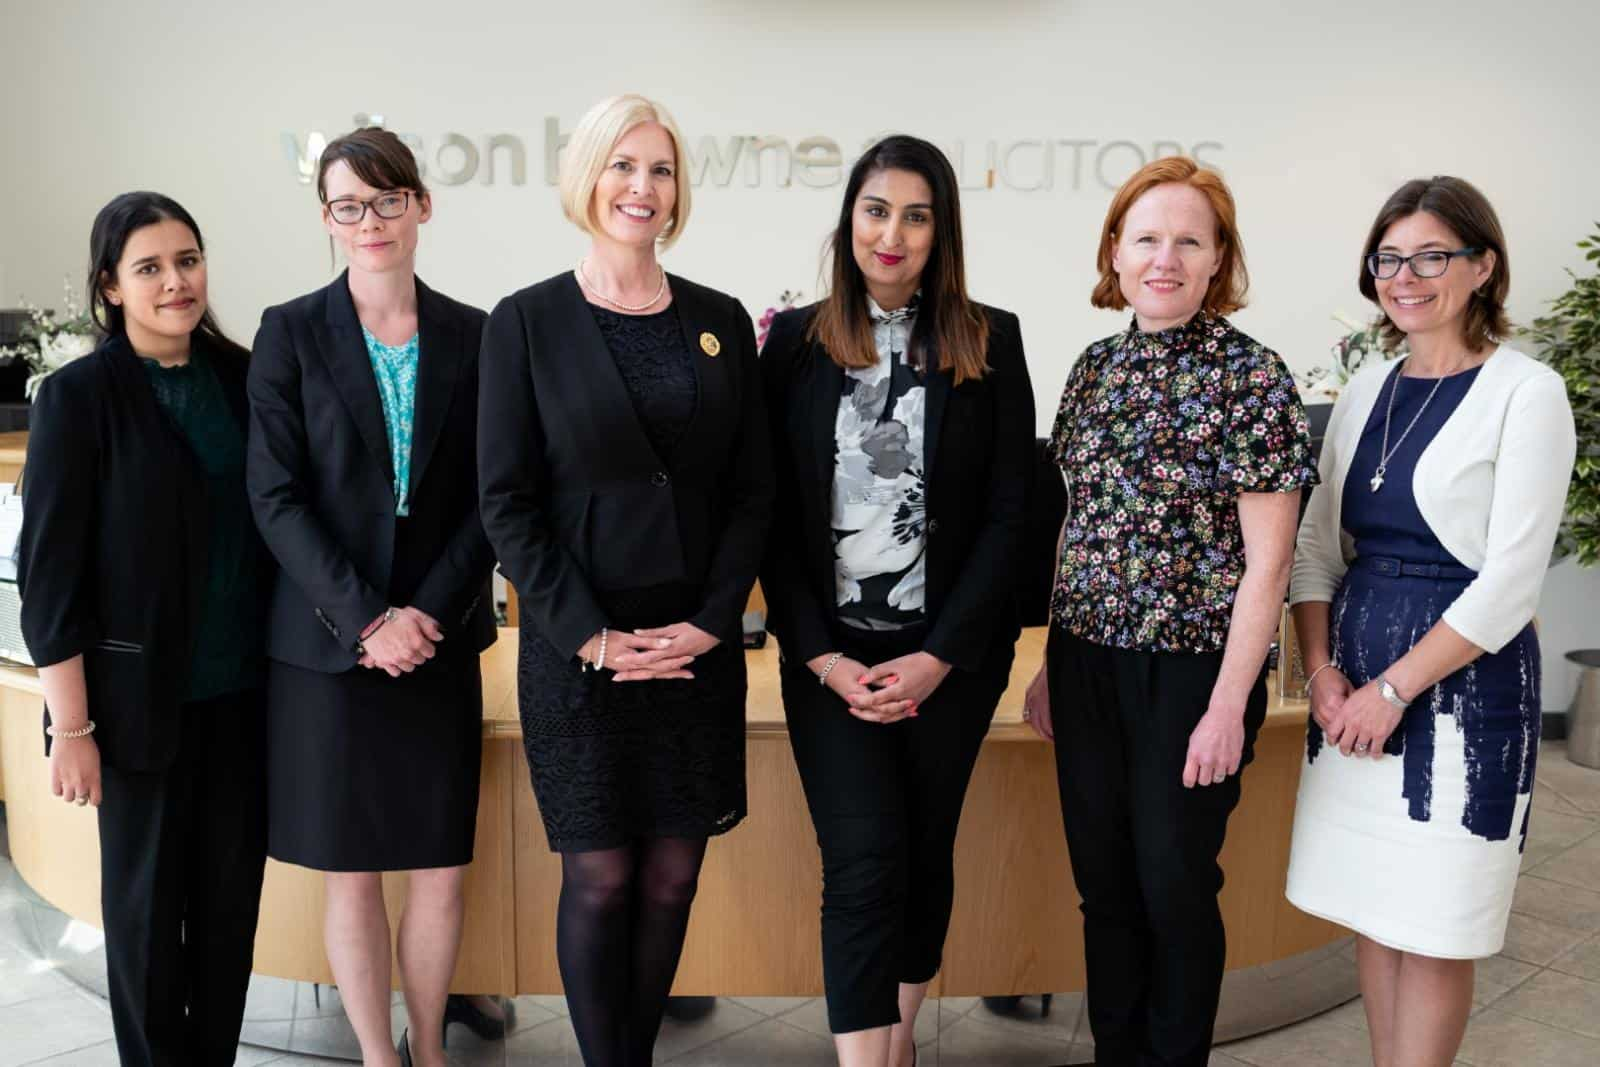 Our Solicitors with Christina Blacklaws